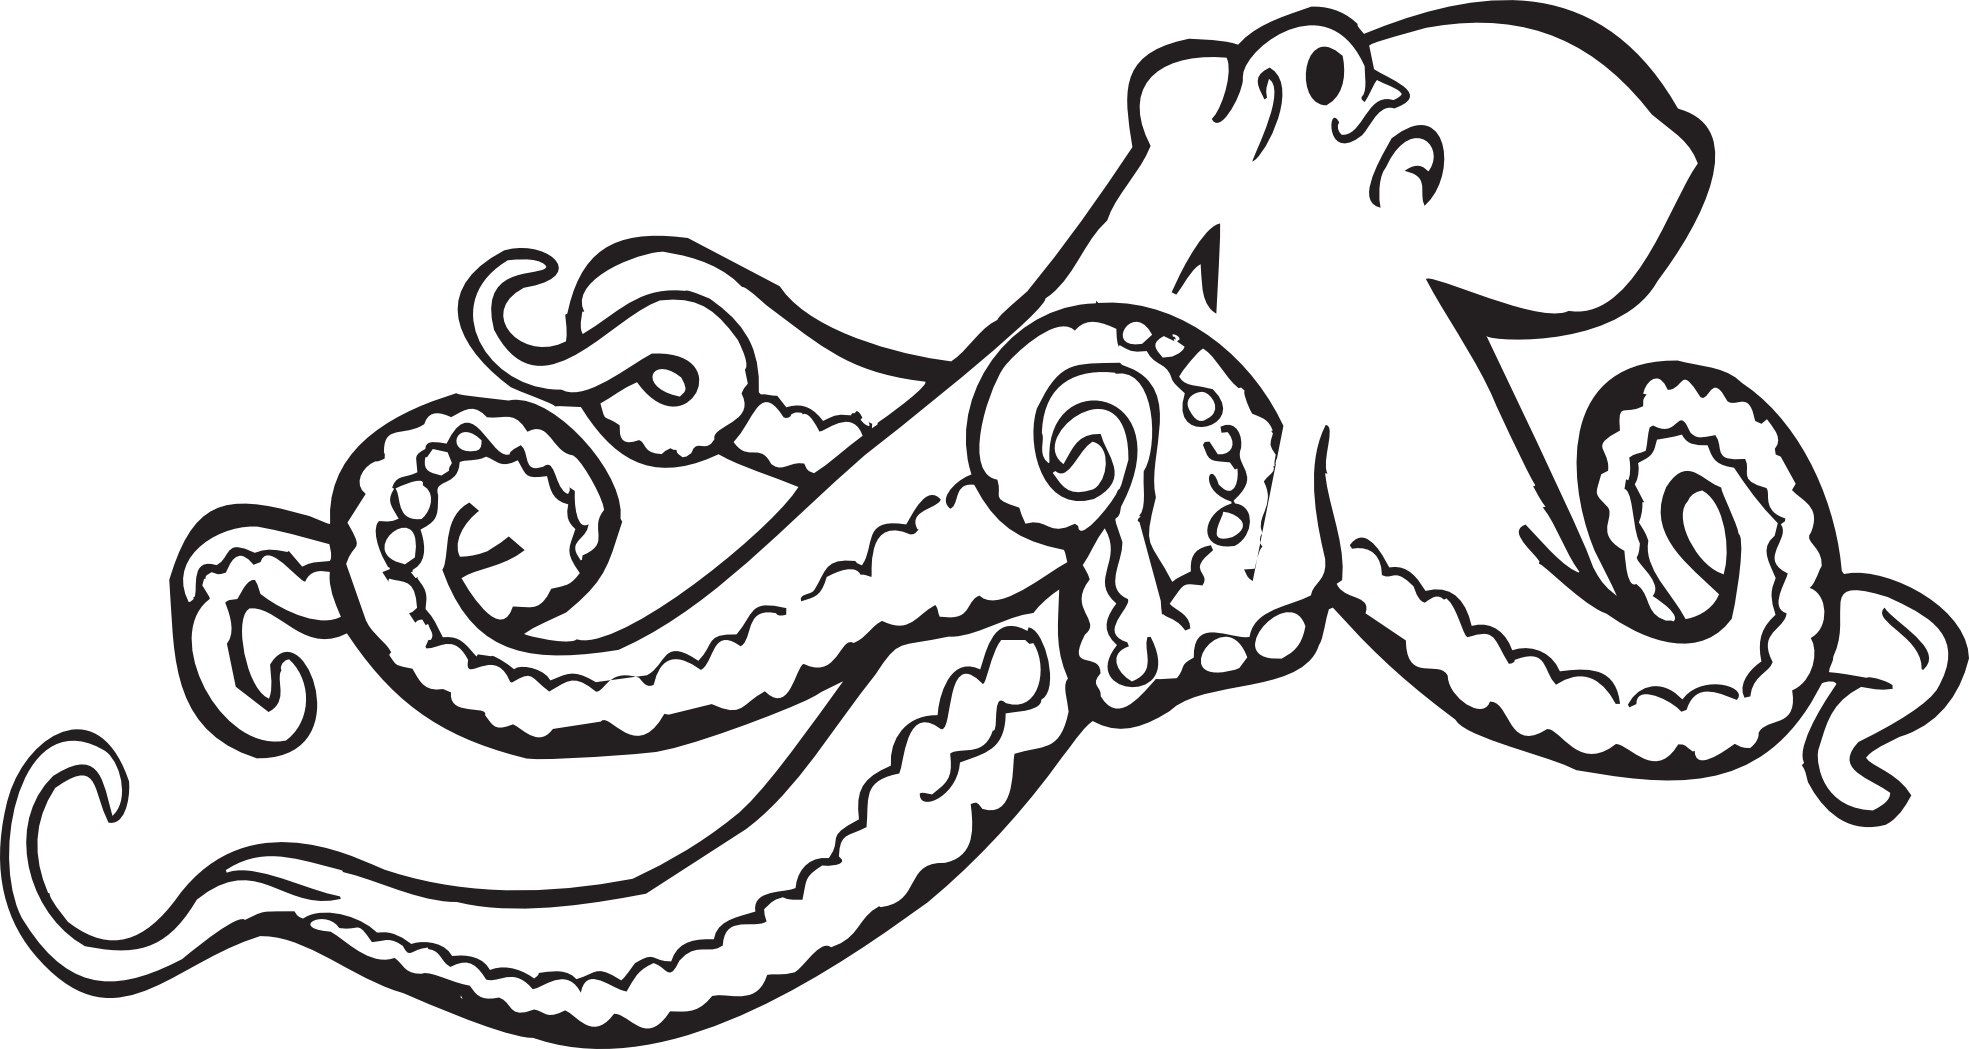 Cool black and white. Scholarships drawing octopus graphic black and white stock